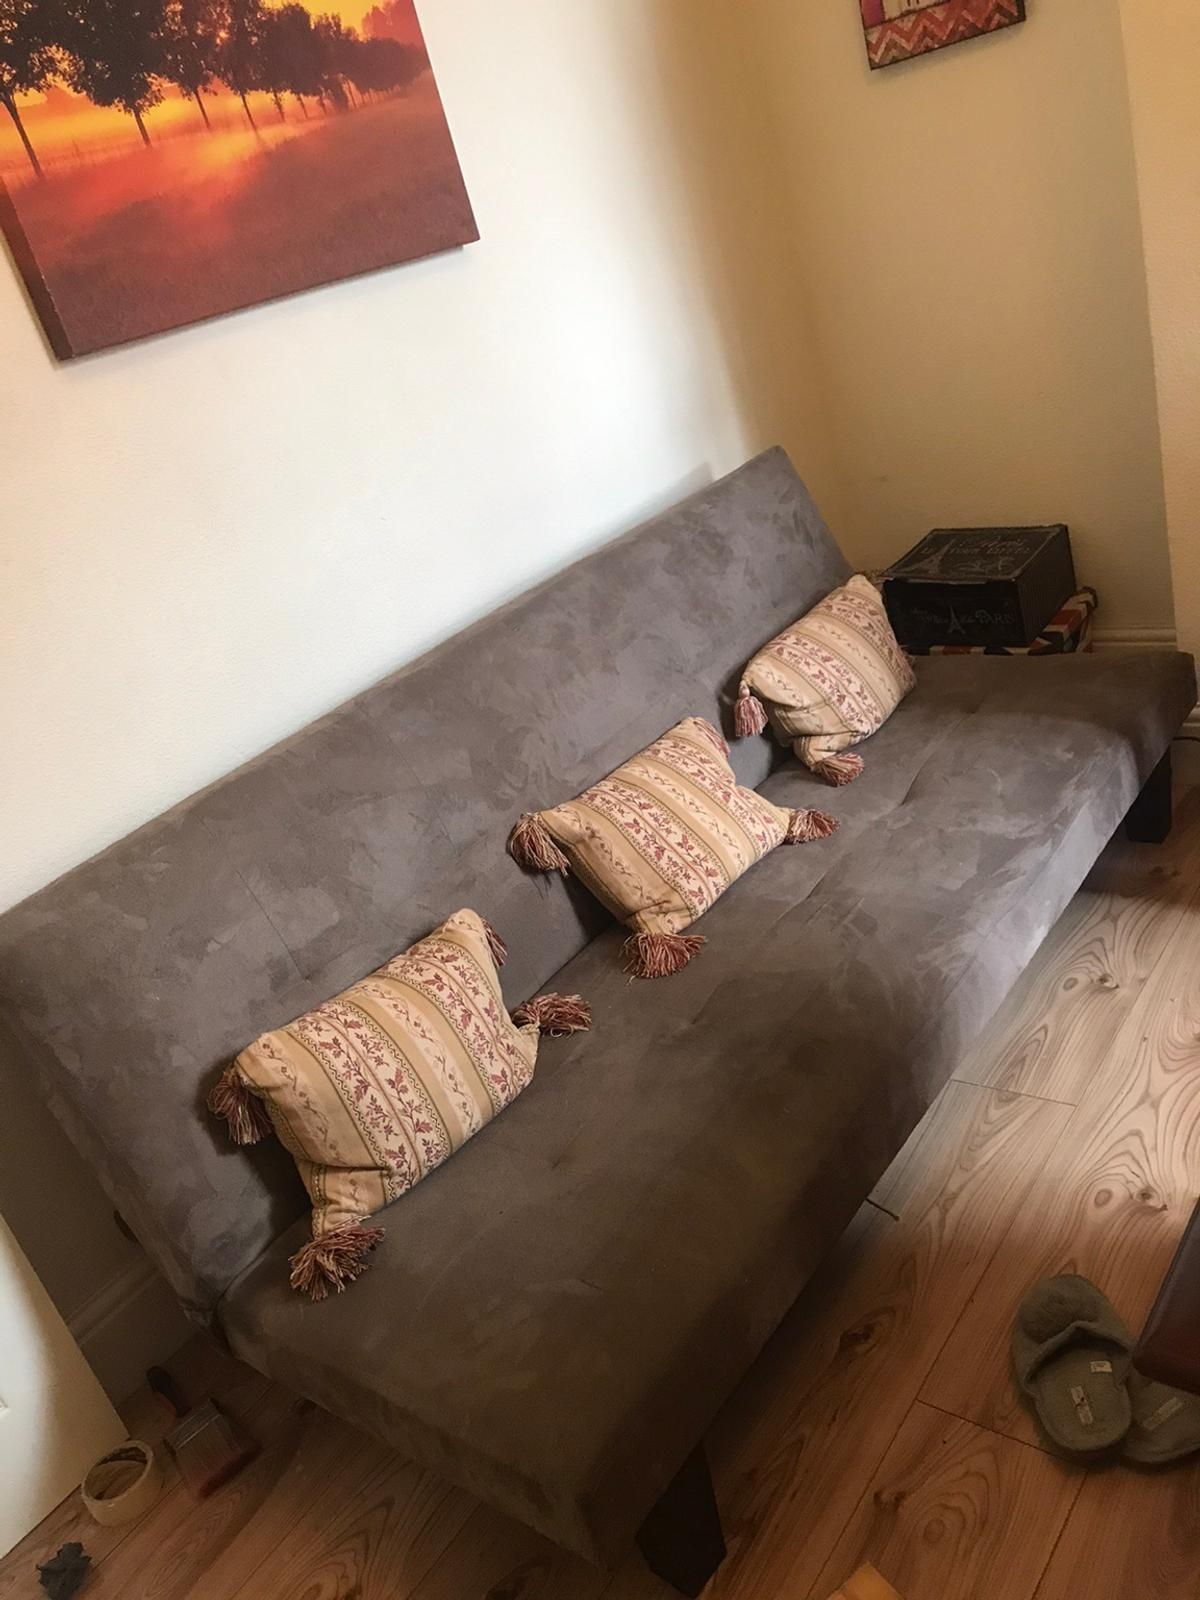 Sofa bed , hardly used only bought it for my partner's son who stays every other weekend. Only been used about 10 times at the most .